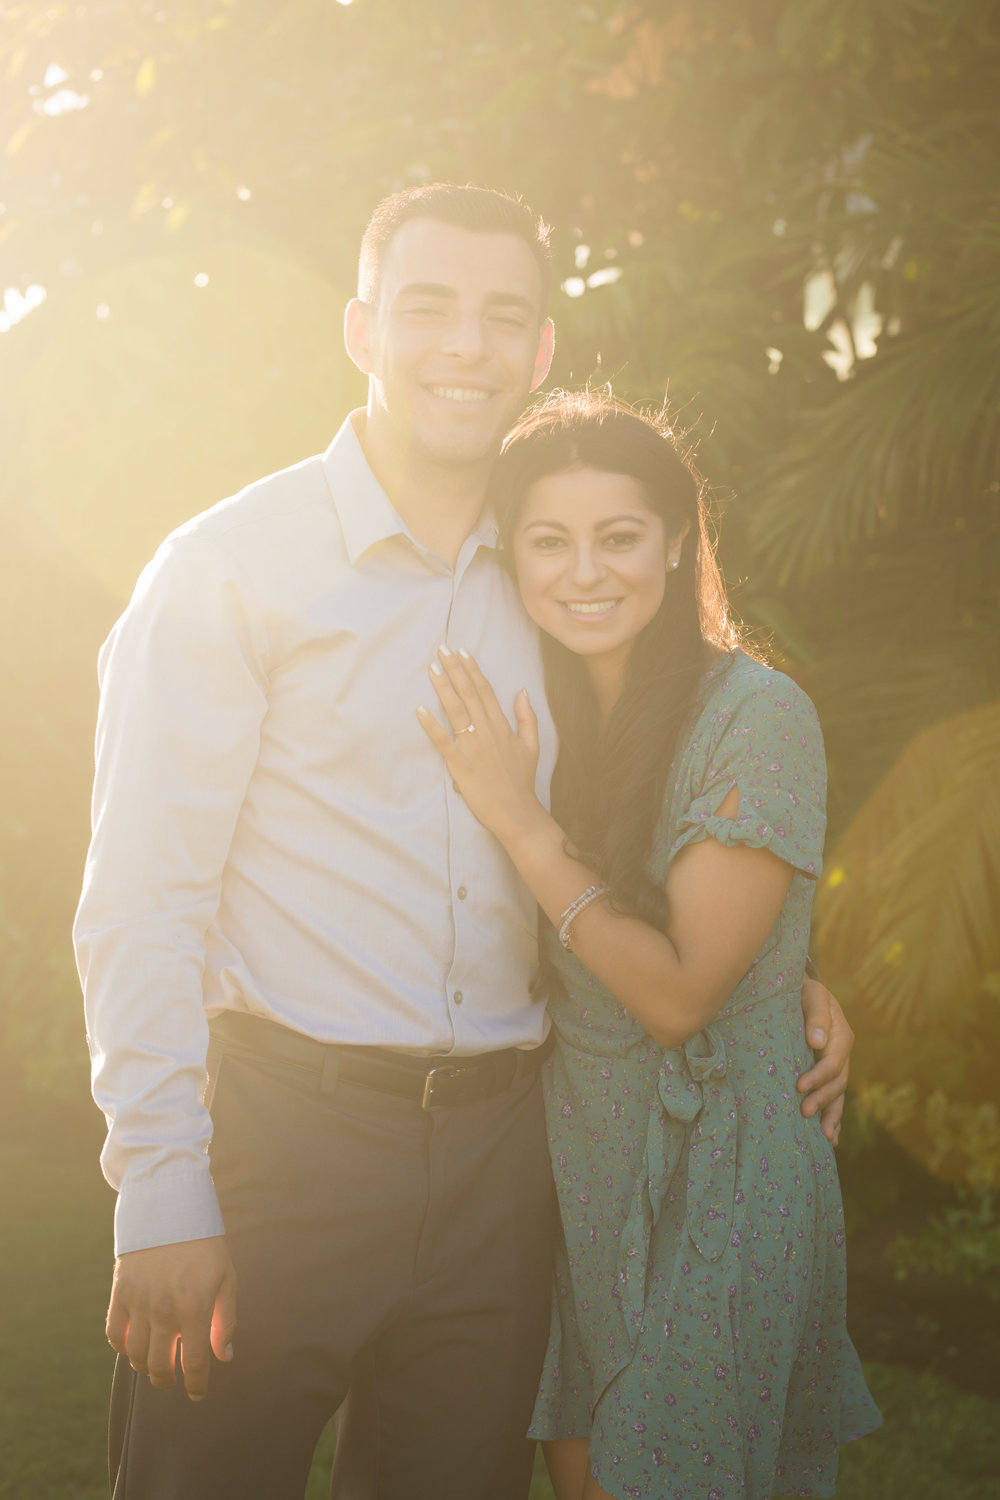 Will&VictoriaProposal-39.jpg